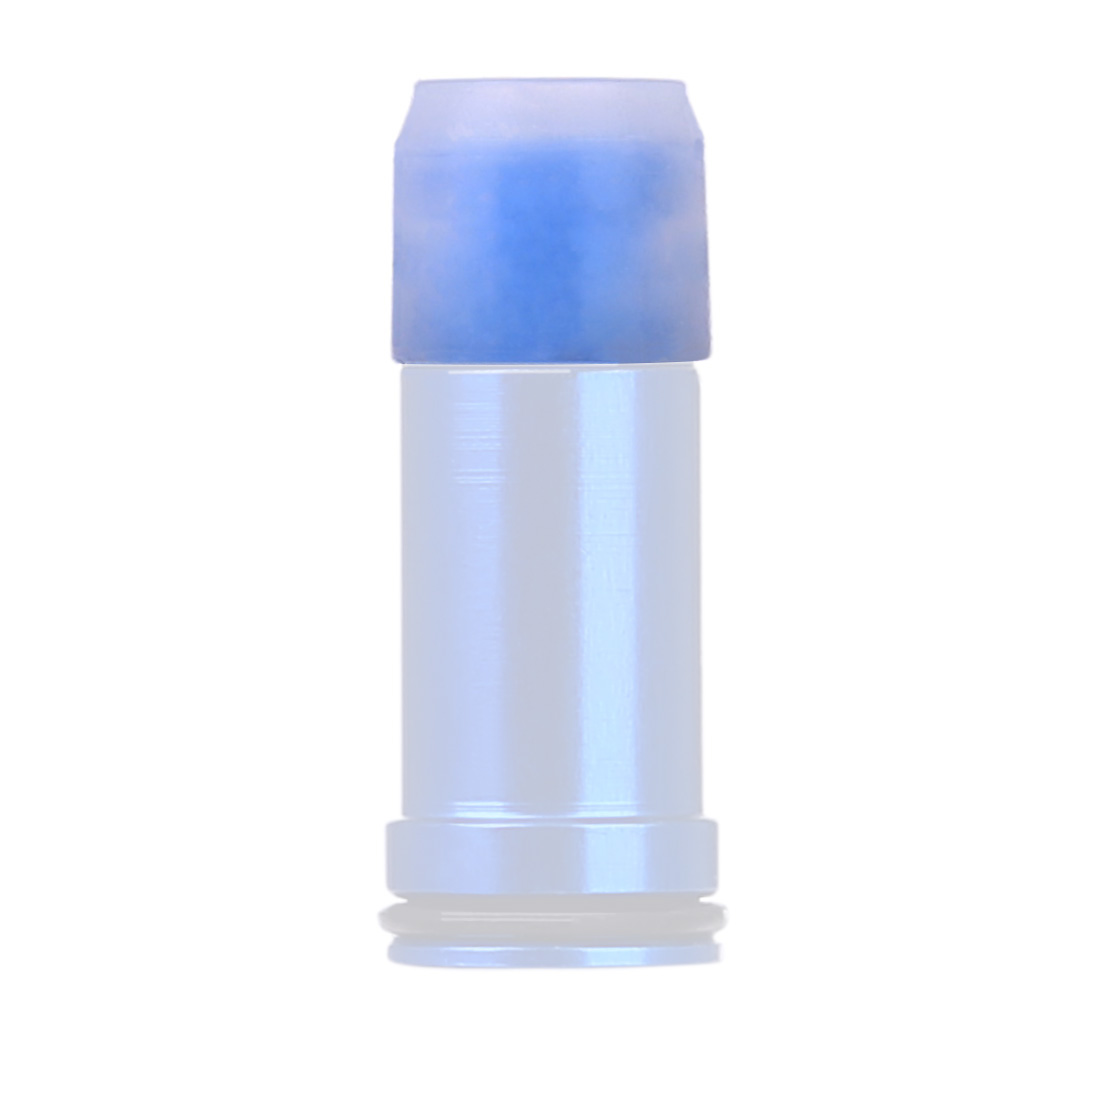 Glue Head For XWE M4 Gearbox Air Seal Nozzle - Transparent